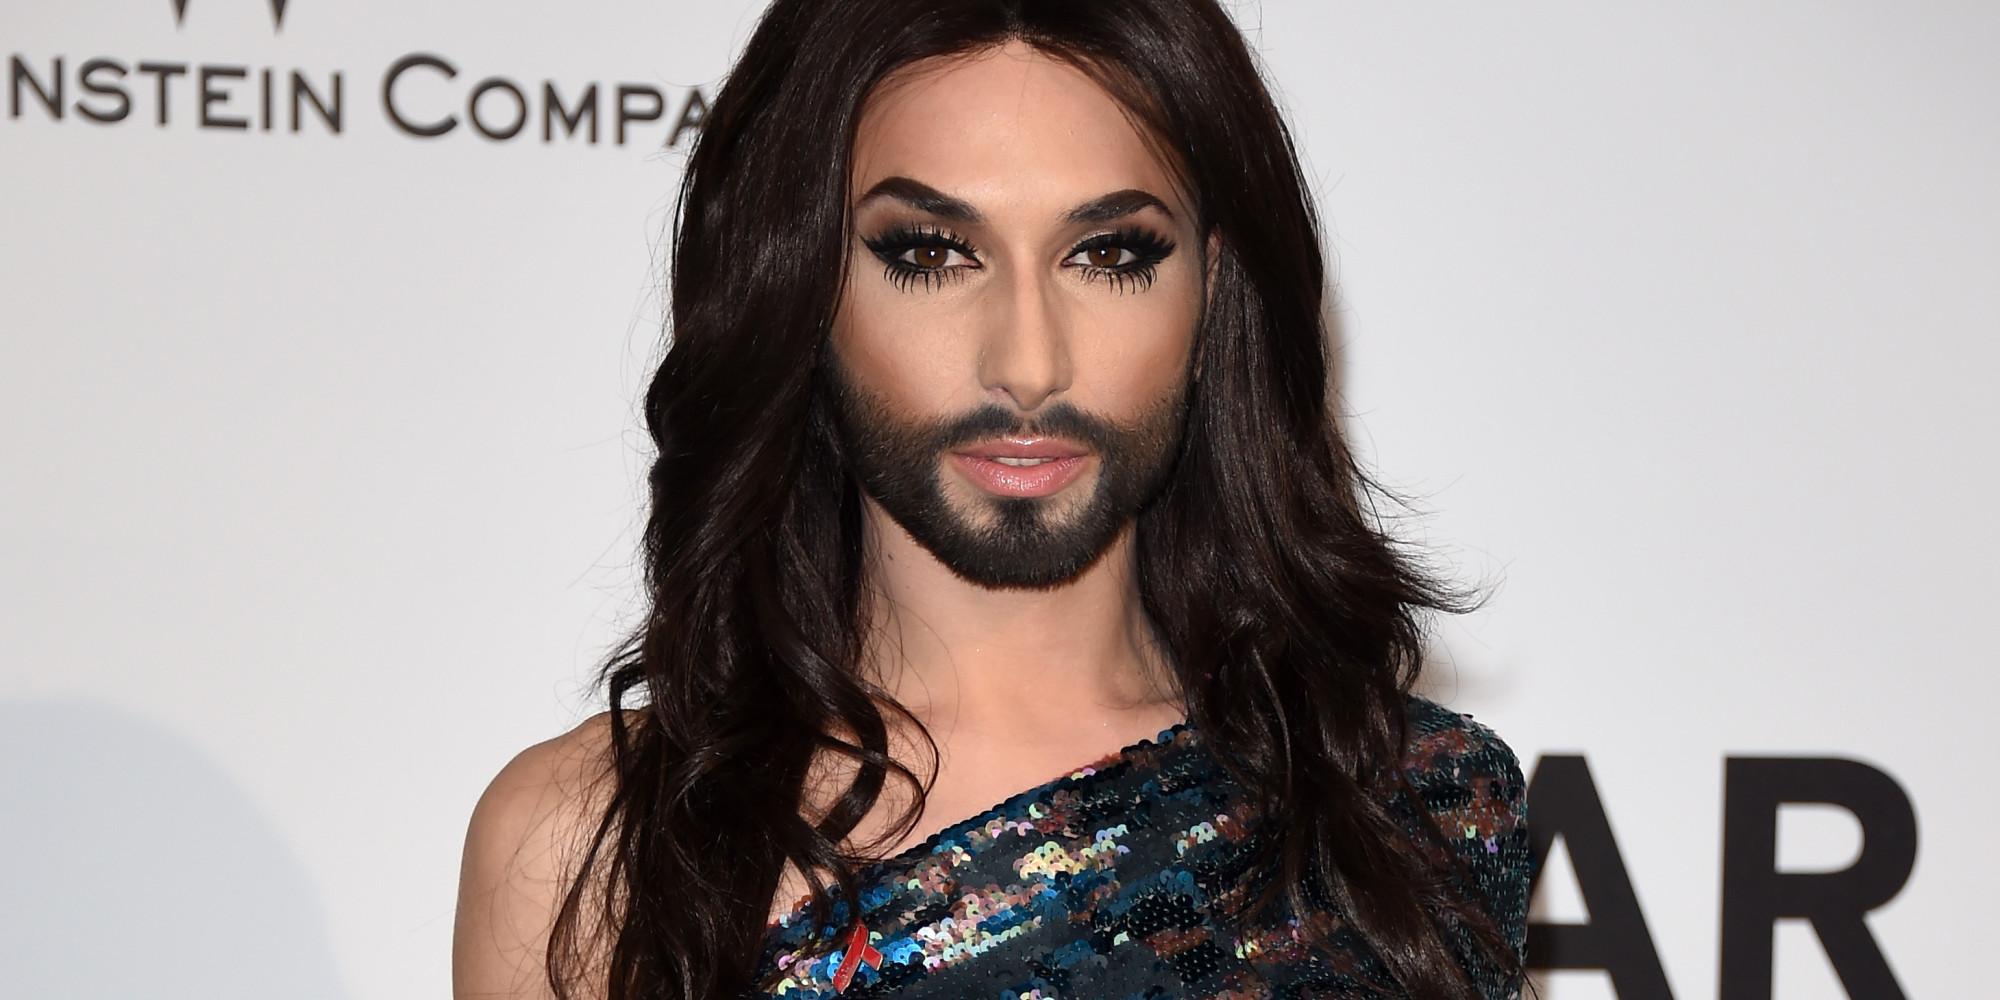 Cannes Film Festival 2014: Eurovision Winner Conchita Wurst Brings ...